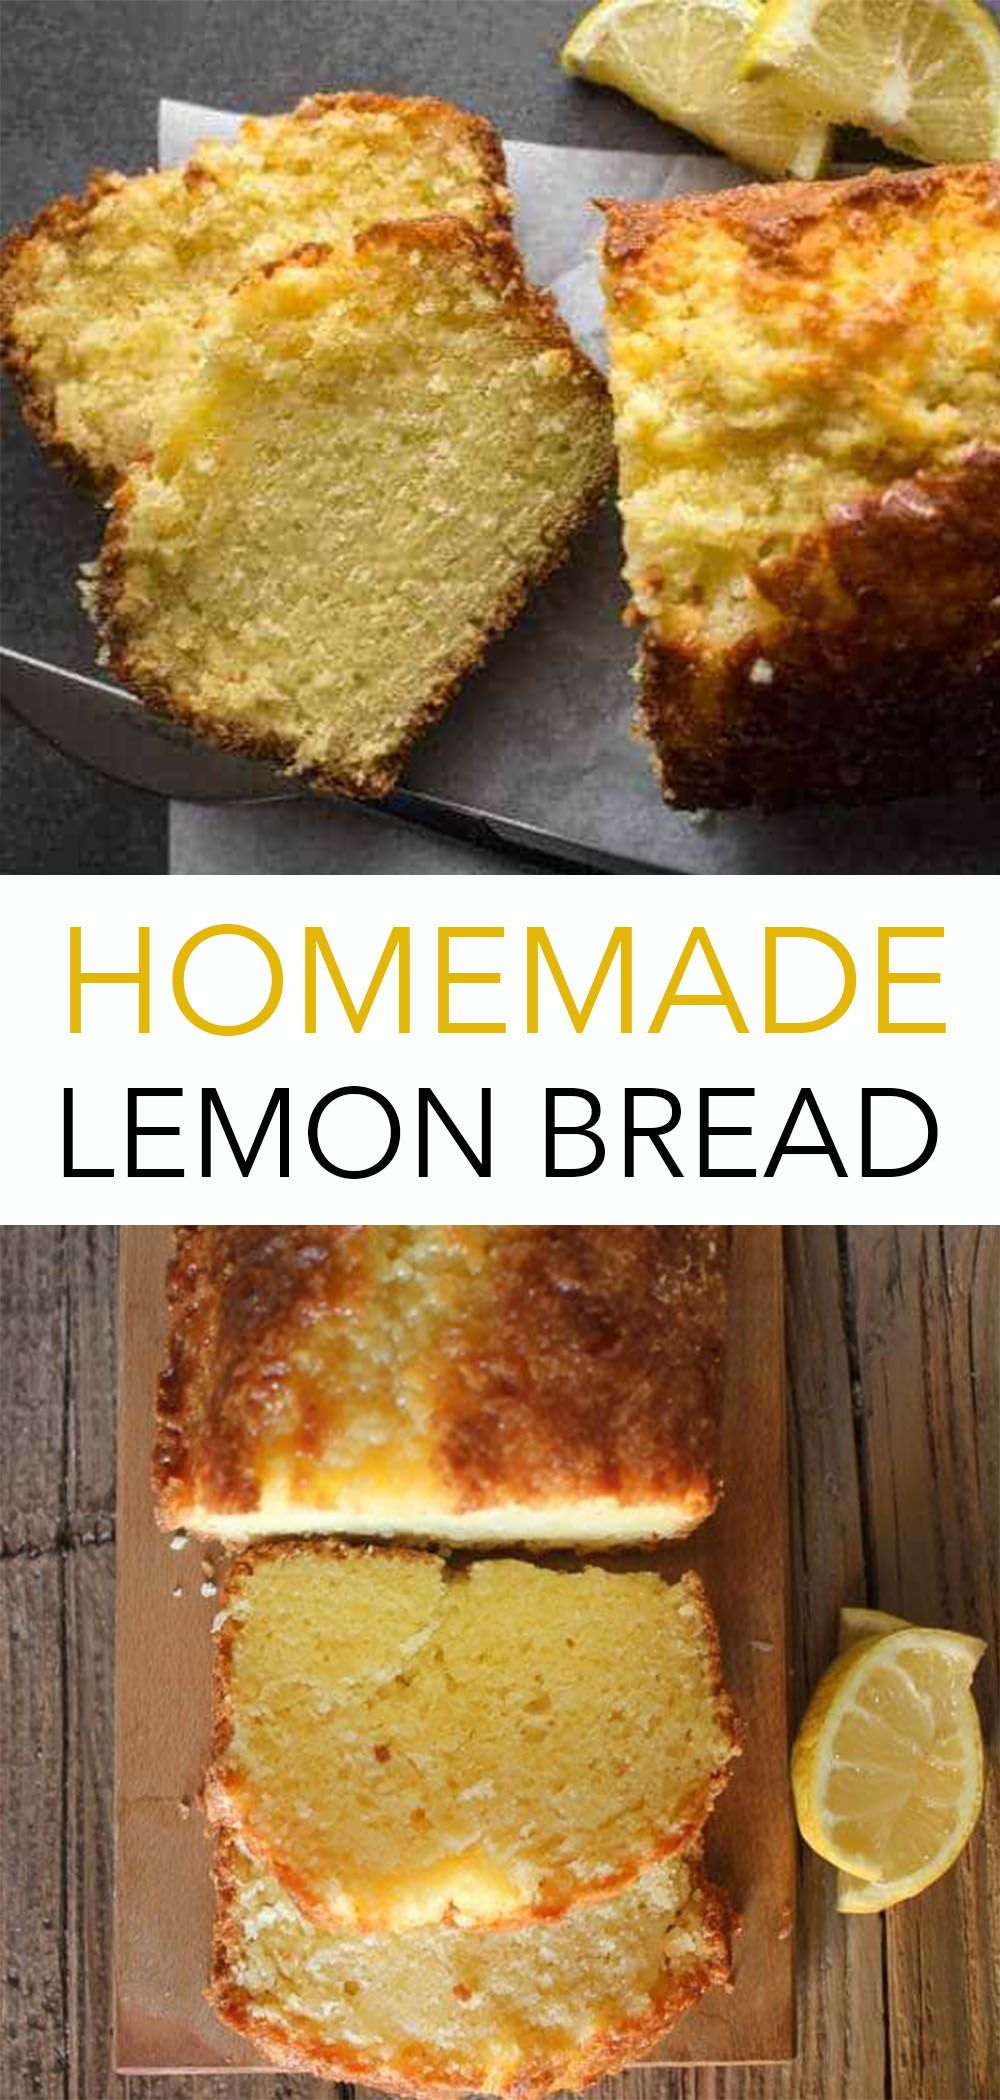 Best Homemade Lemon Bread In 2020 Easy Lemon Bread Recipes Lemon Bread Recipes Lemon Recipes